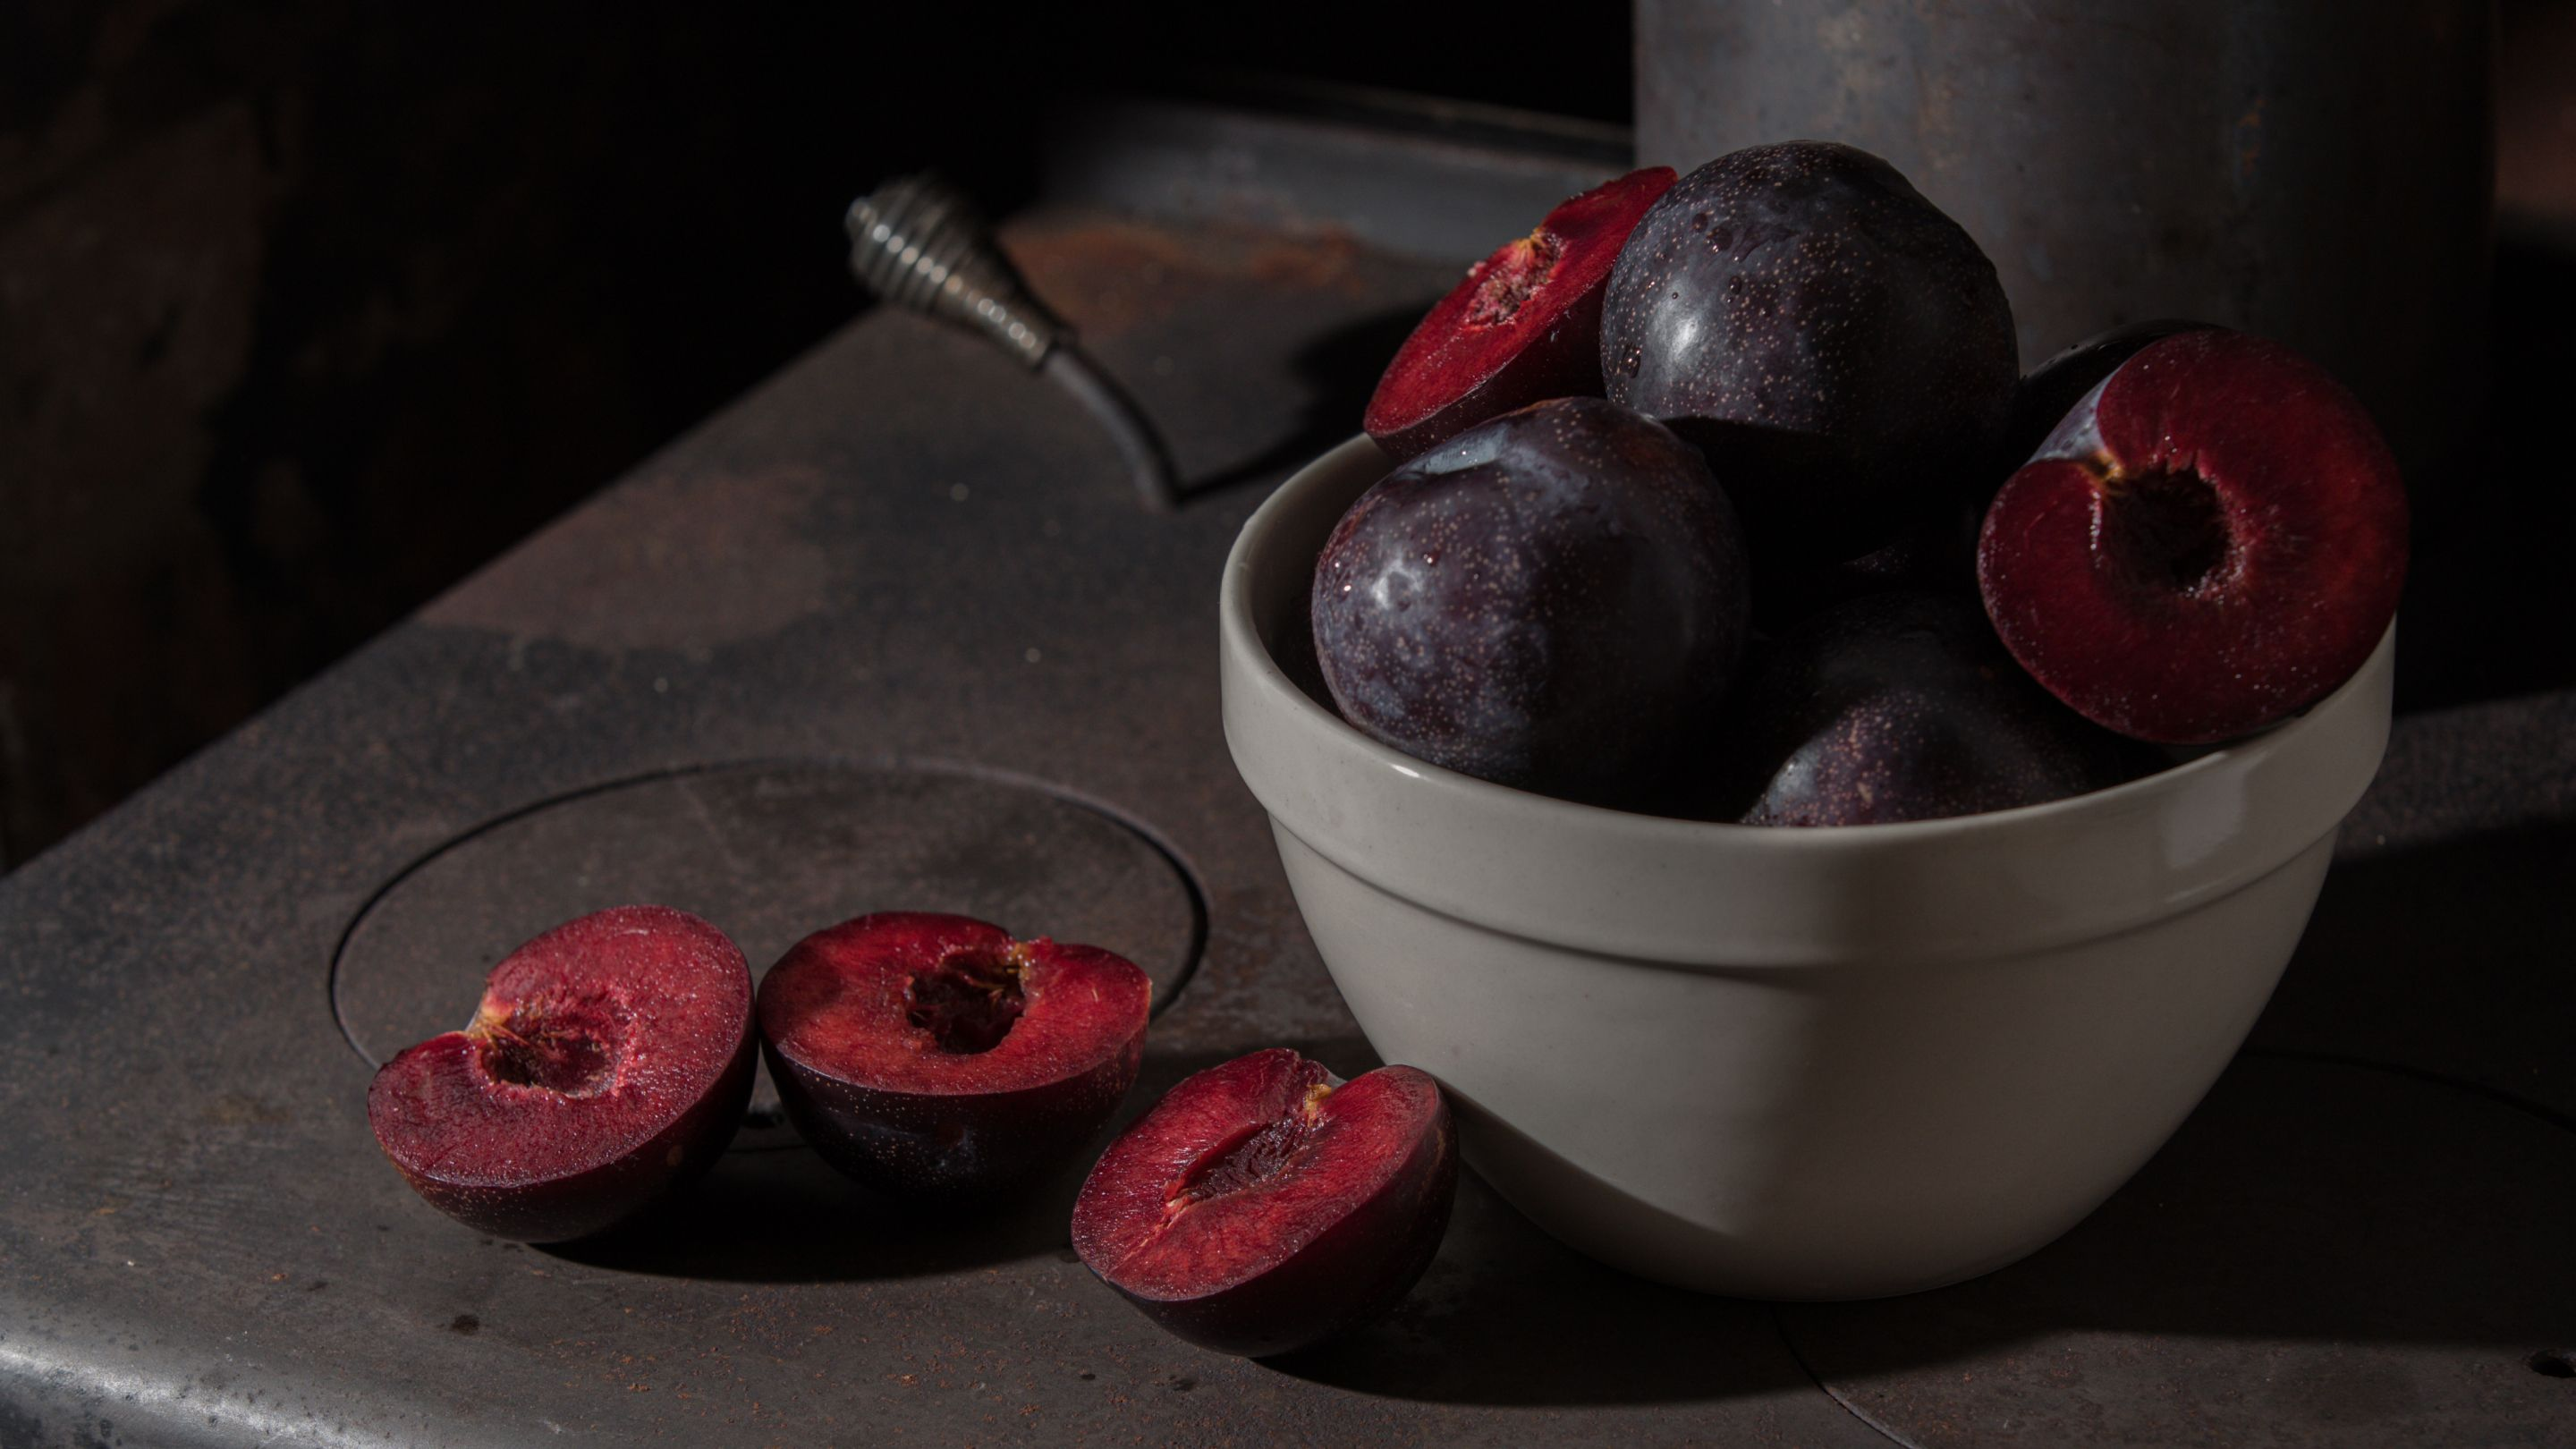 A bowl of ripe Queen Garnet plums, with Queen Garnet plums sliced in half beside the bowl